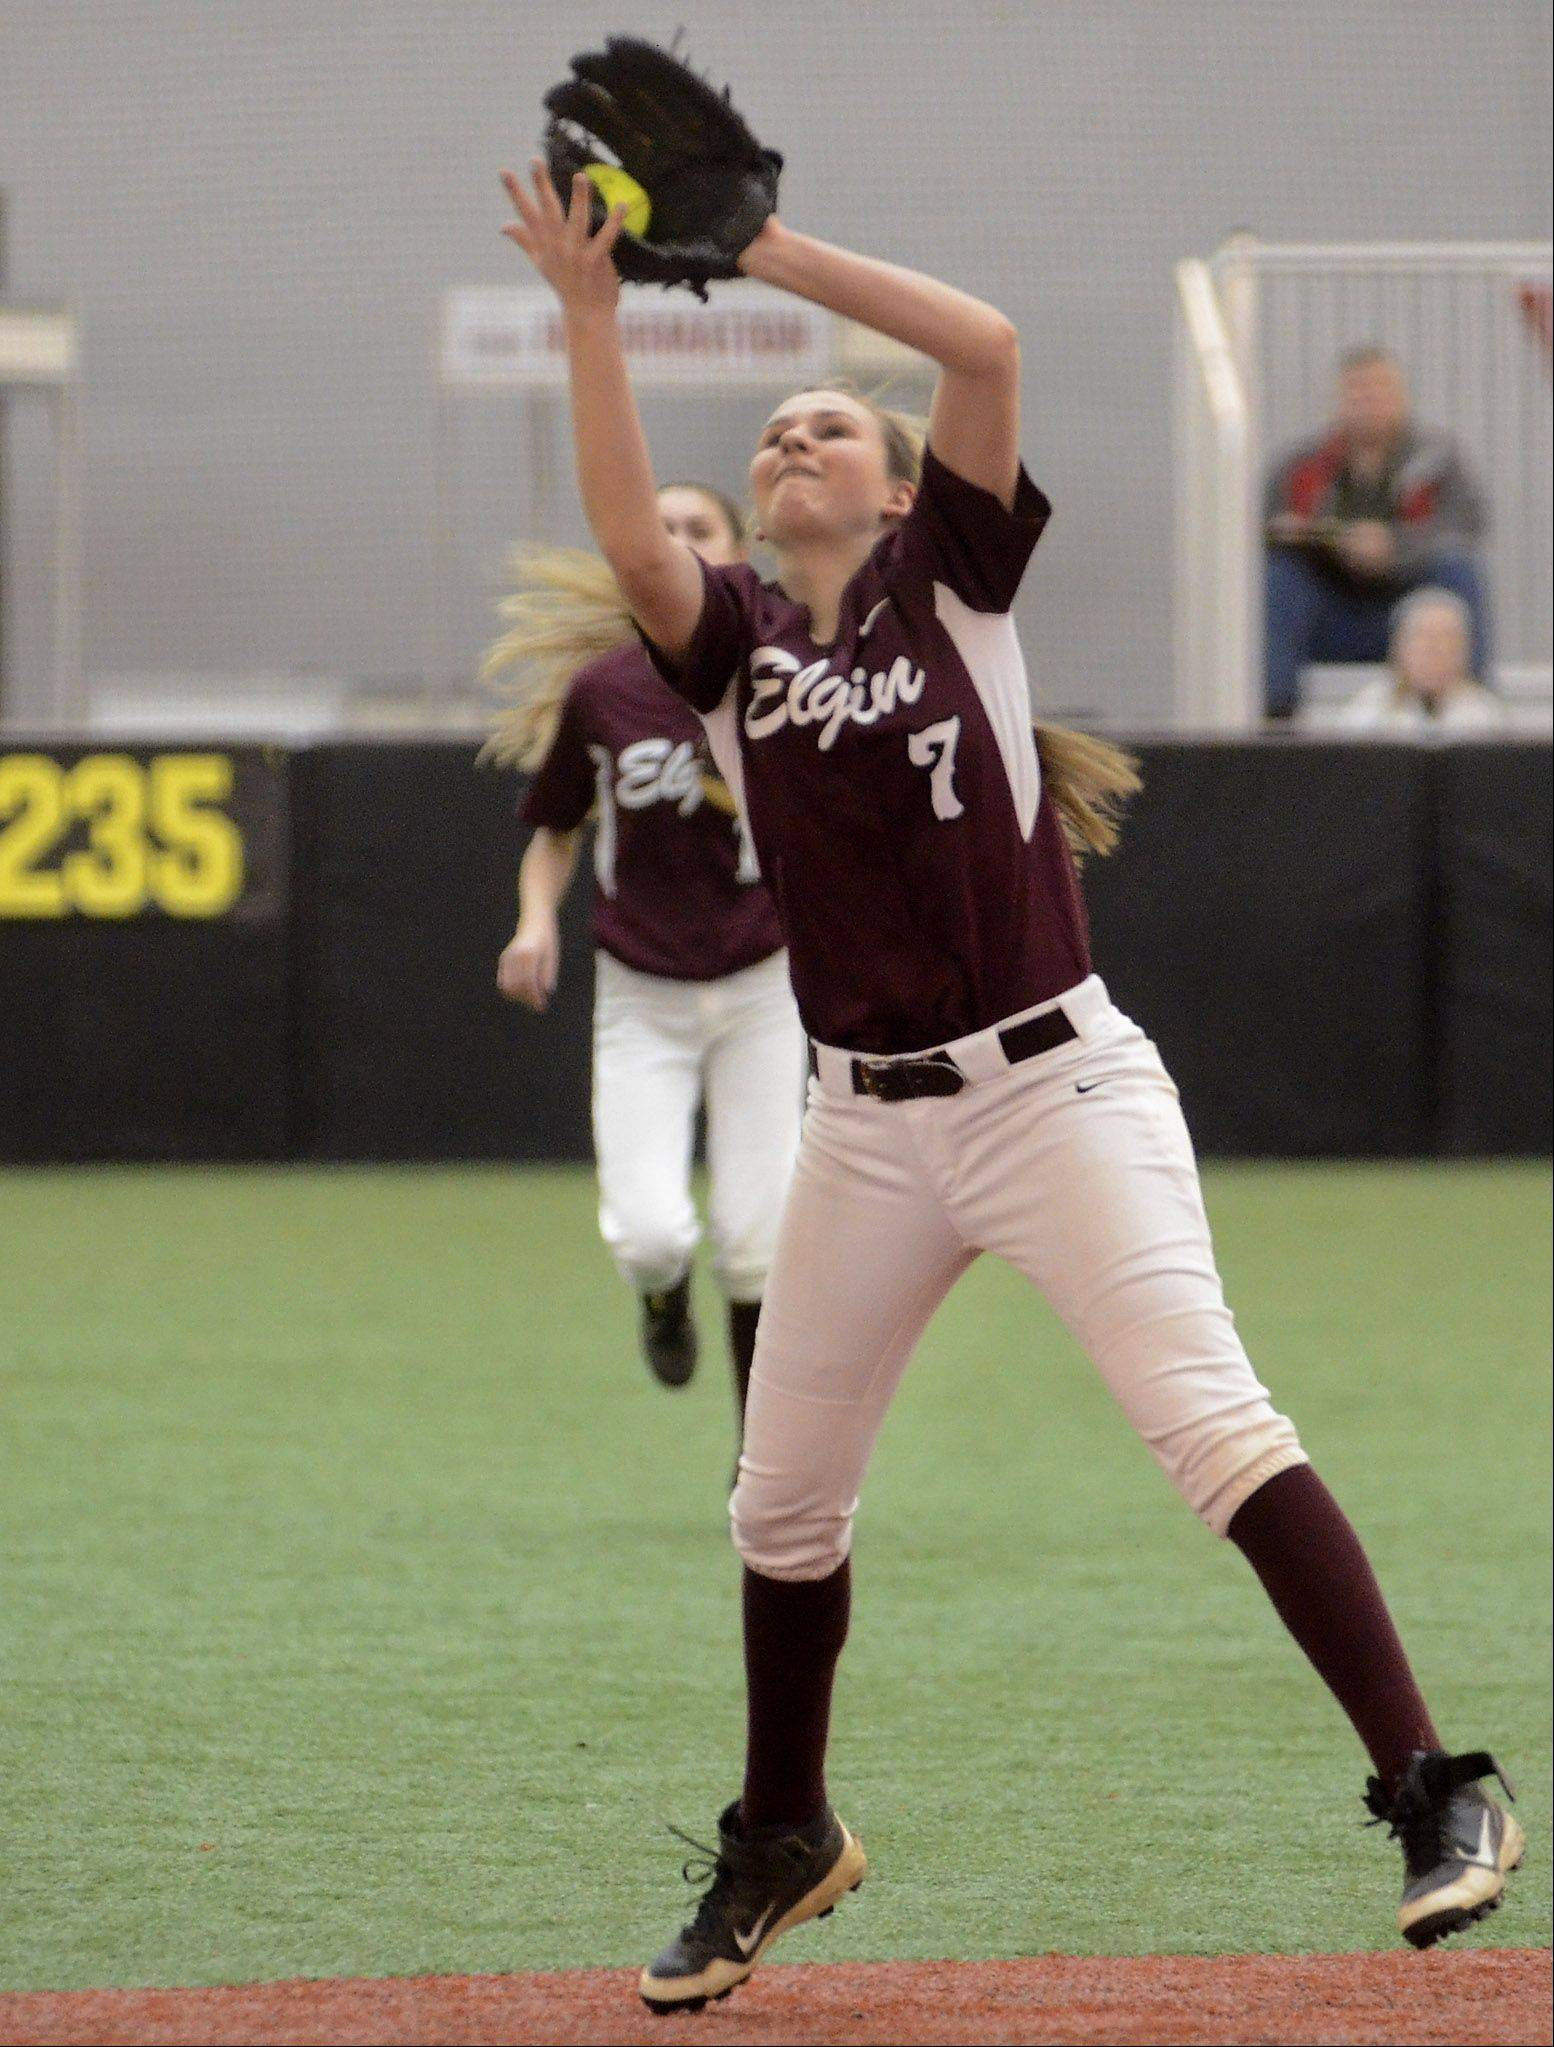 Bob Chwedyk/bchwedyk@dailyherald.comElgin shortstop Bri Wright catches an infield pop up in the fifth inning Monday during the Maroons' 3-2 win in eight innings at The Dome at The Ballpark in Rosemont.